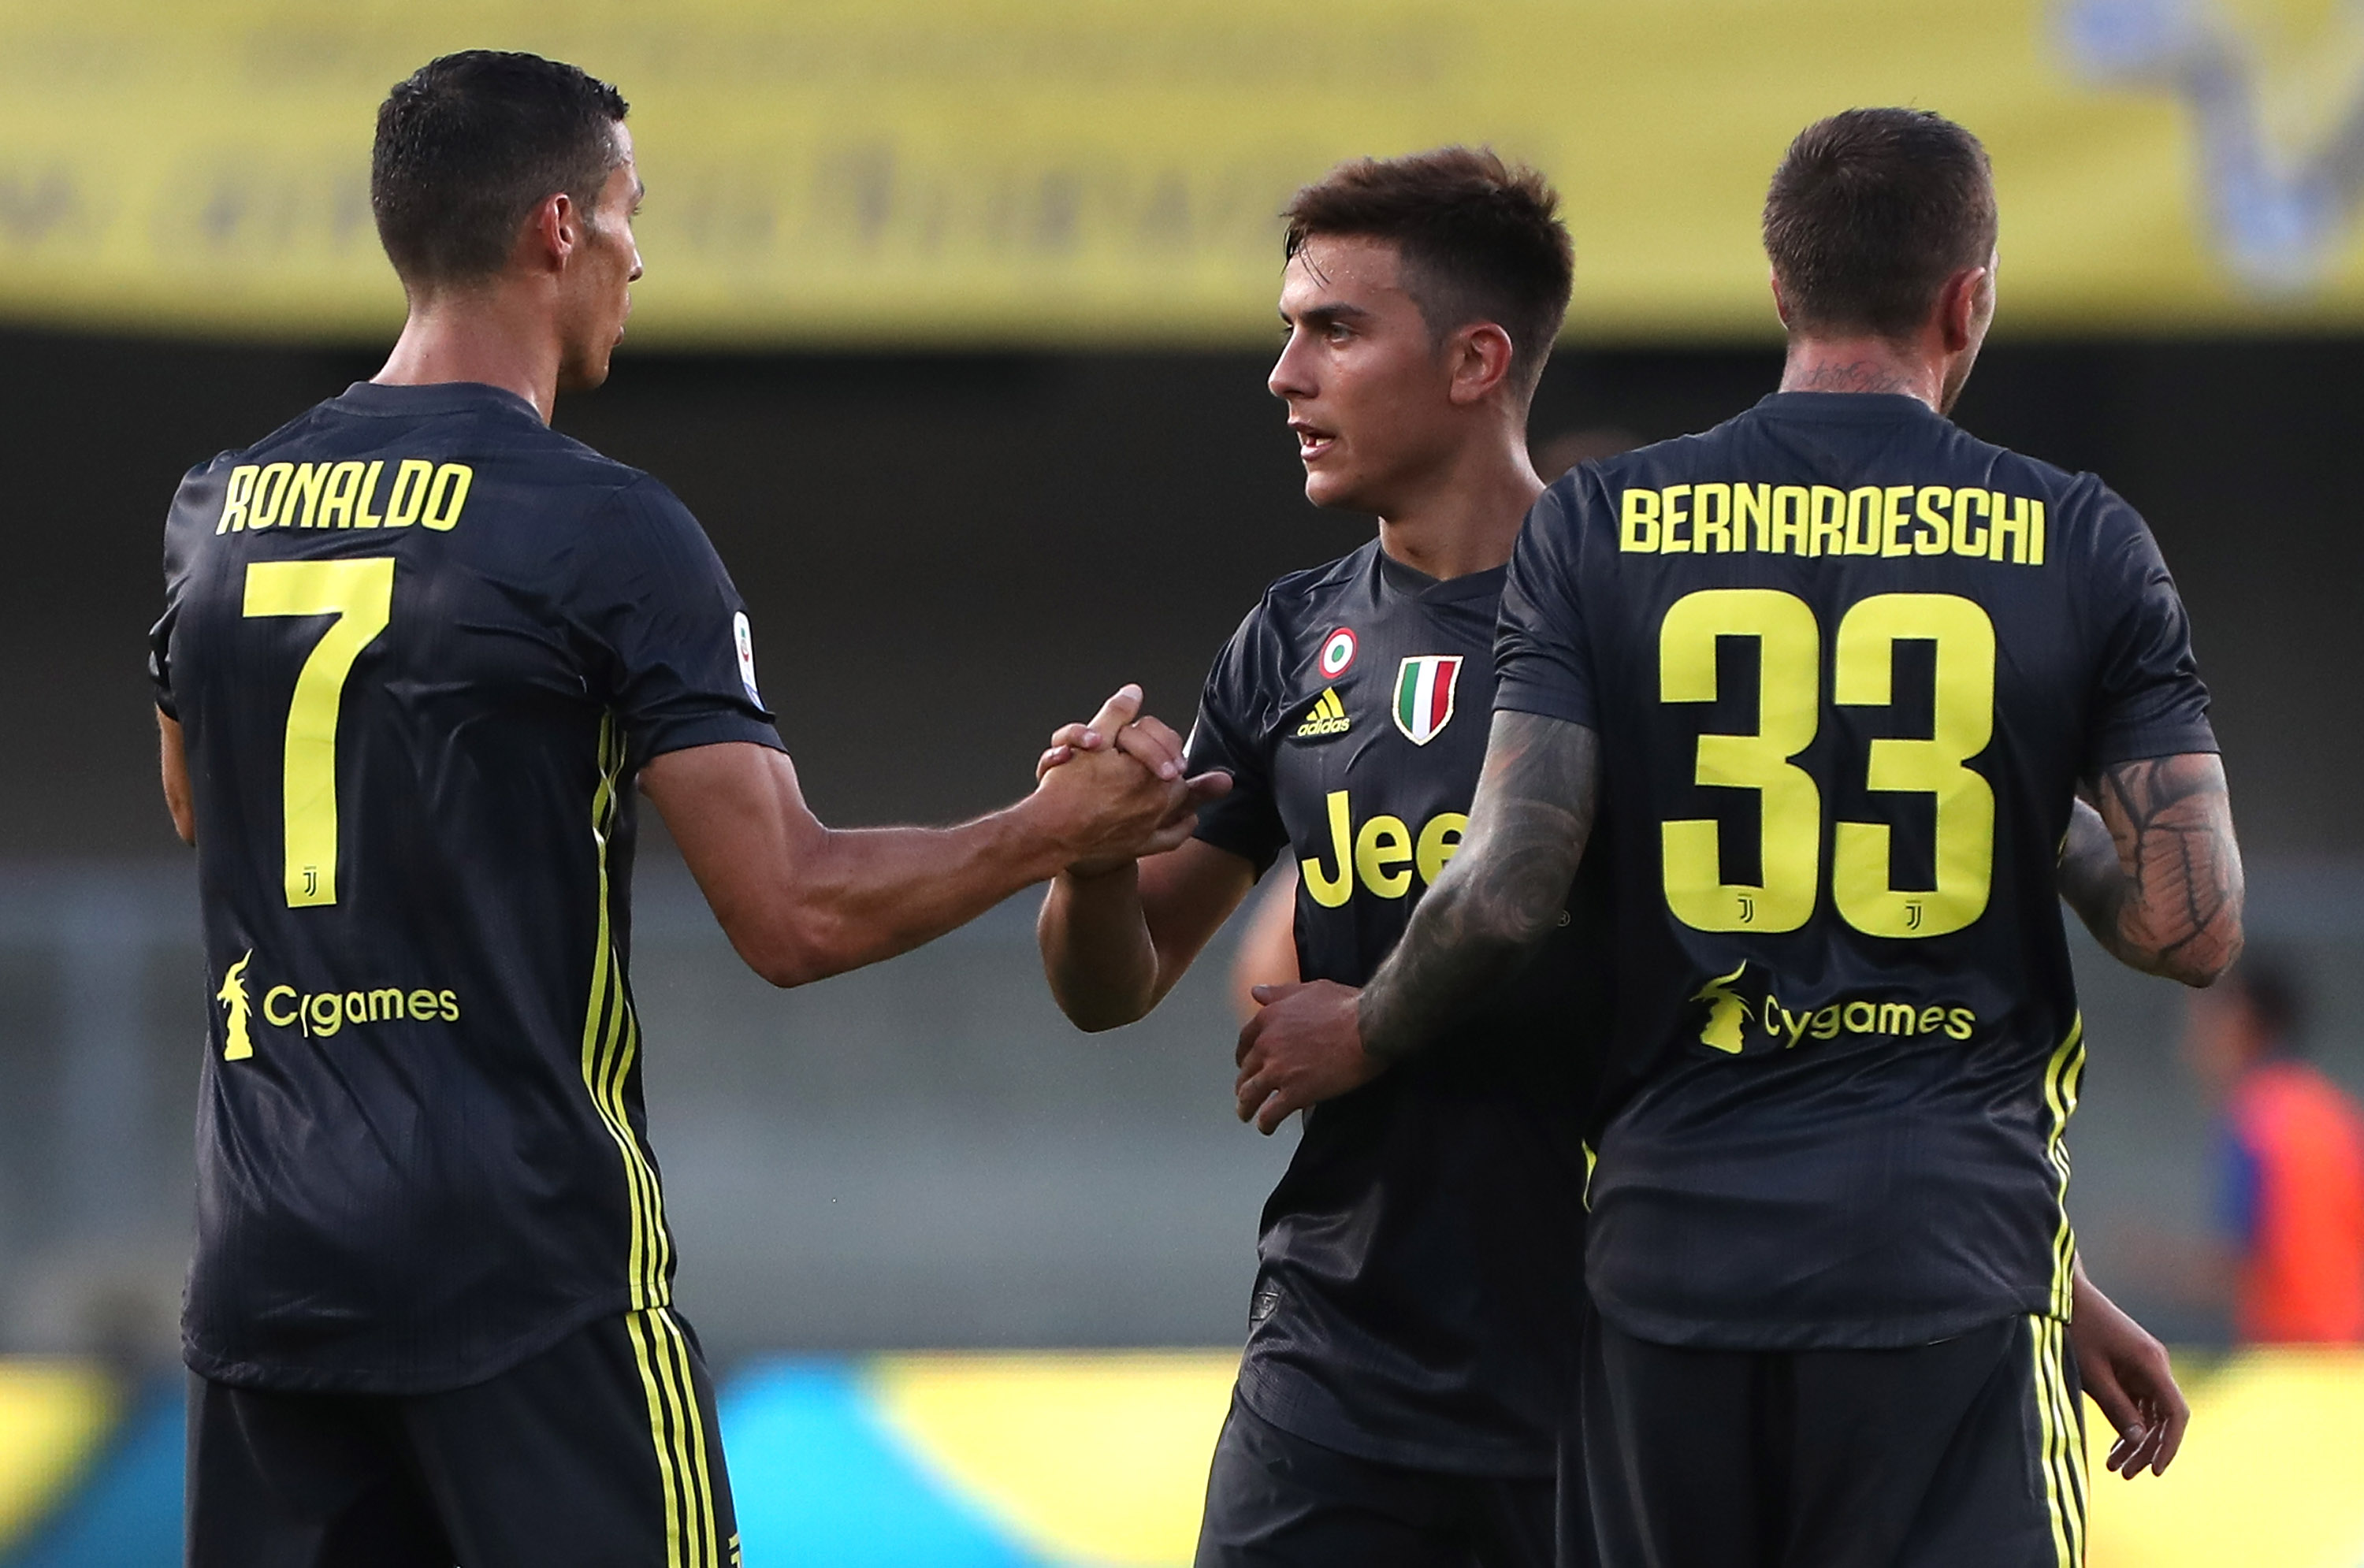 Juventus' Paulo Dybala: Cristiano Ronaldo and I working 'brilliantly' together